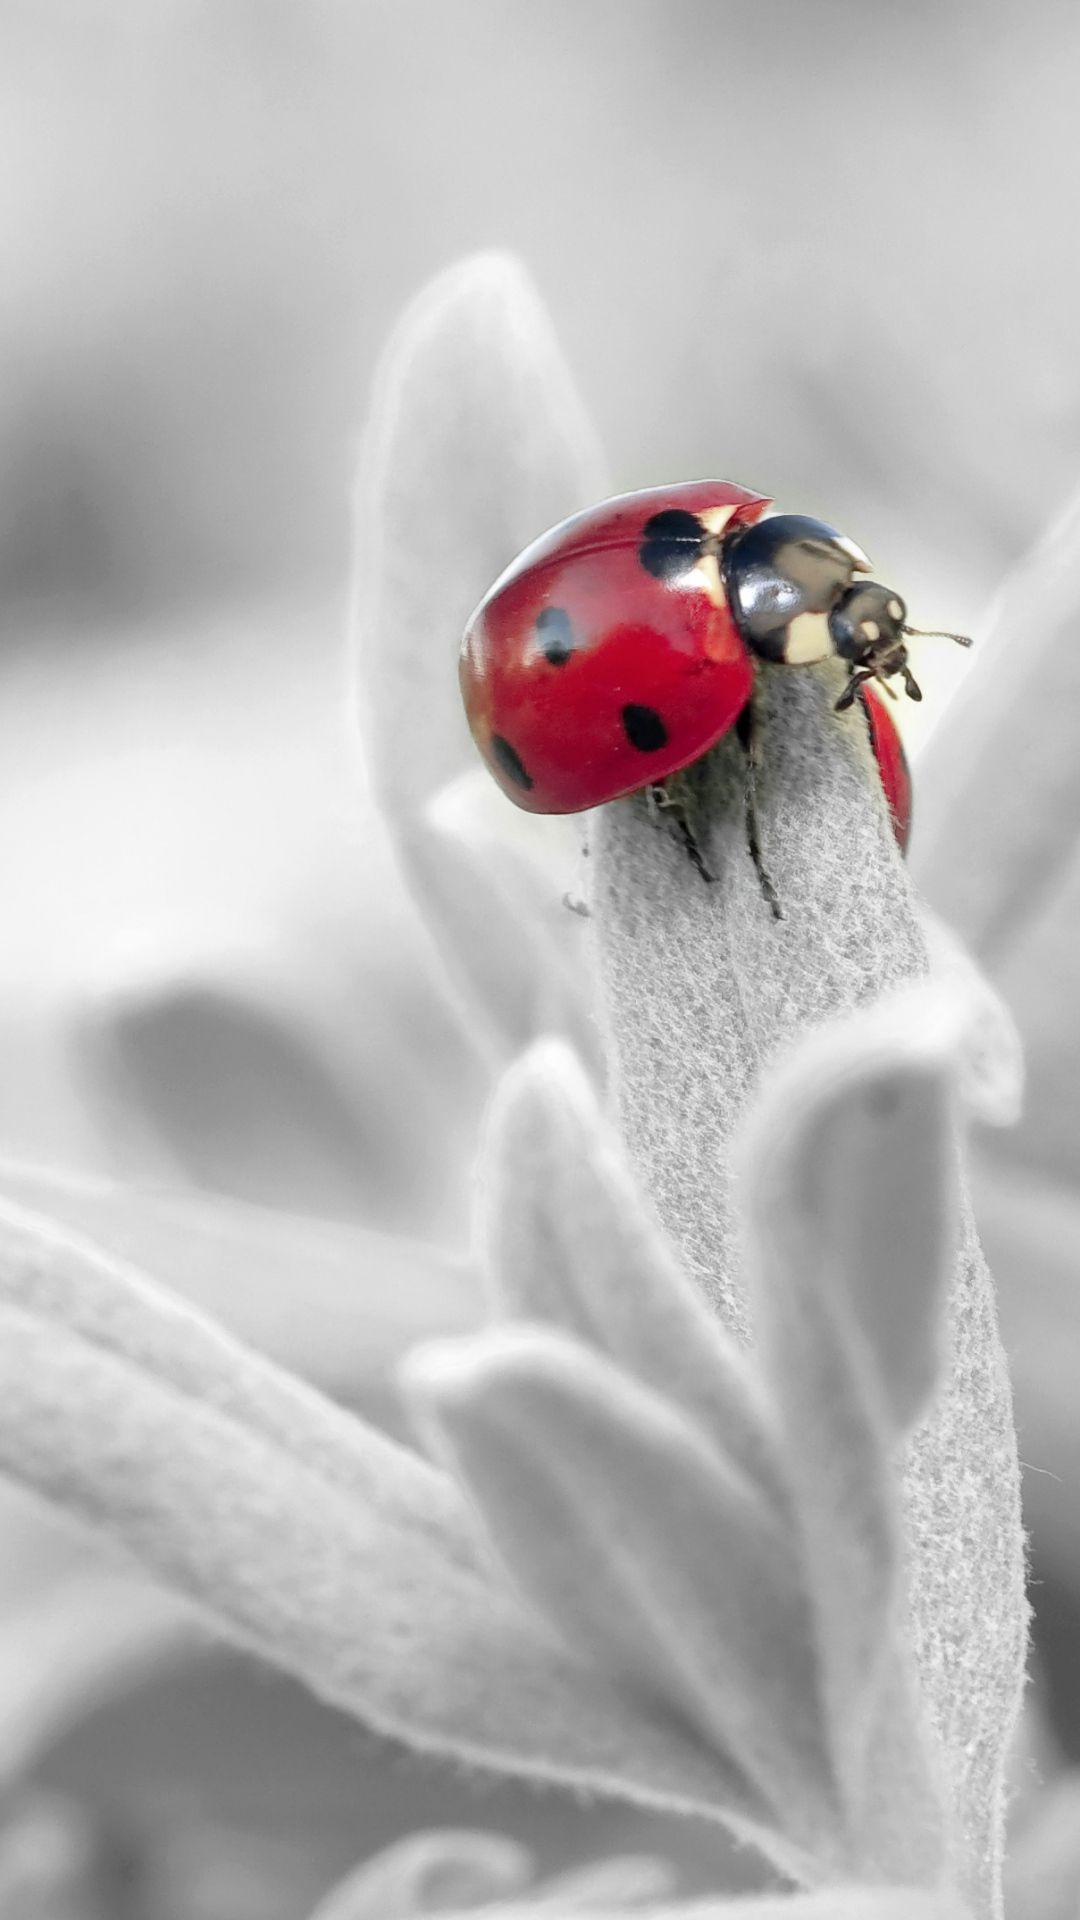 insects ladybirds desktop wallpapers - photo #21